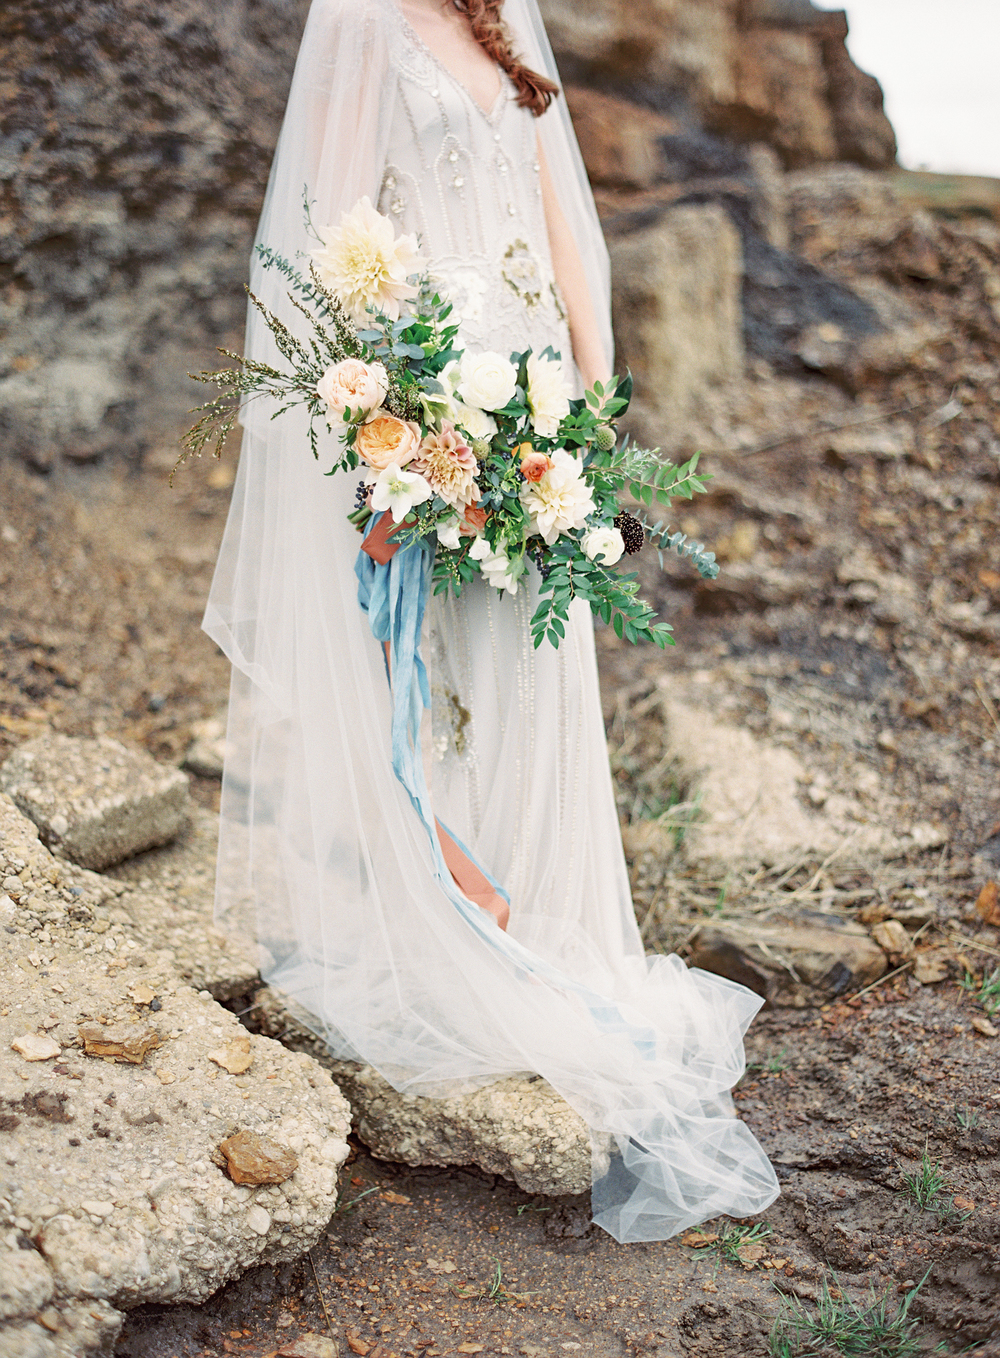 The Southern Table - Lakeside Editorial Bouquet - Photo by Kayla Barker Photography